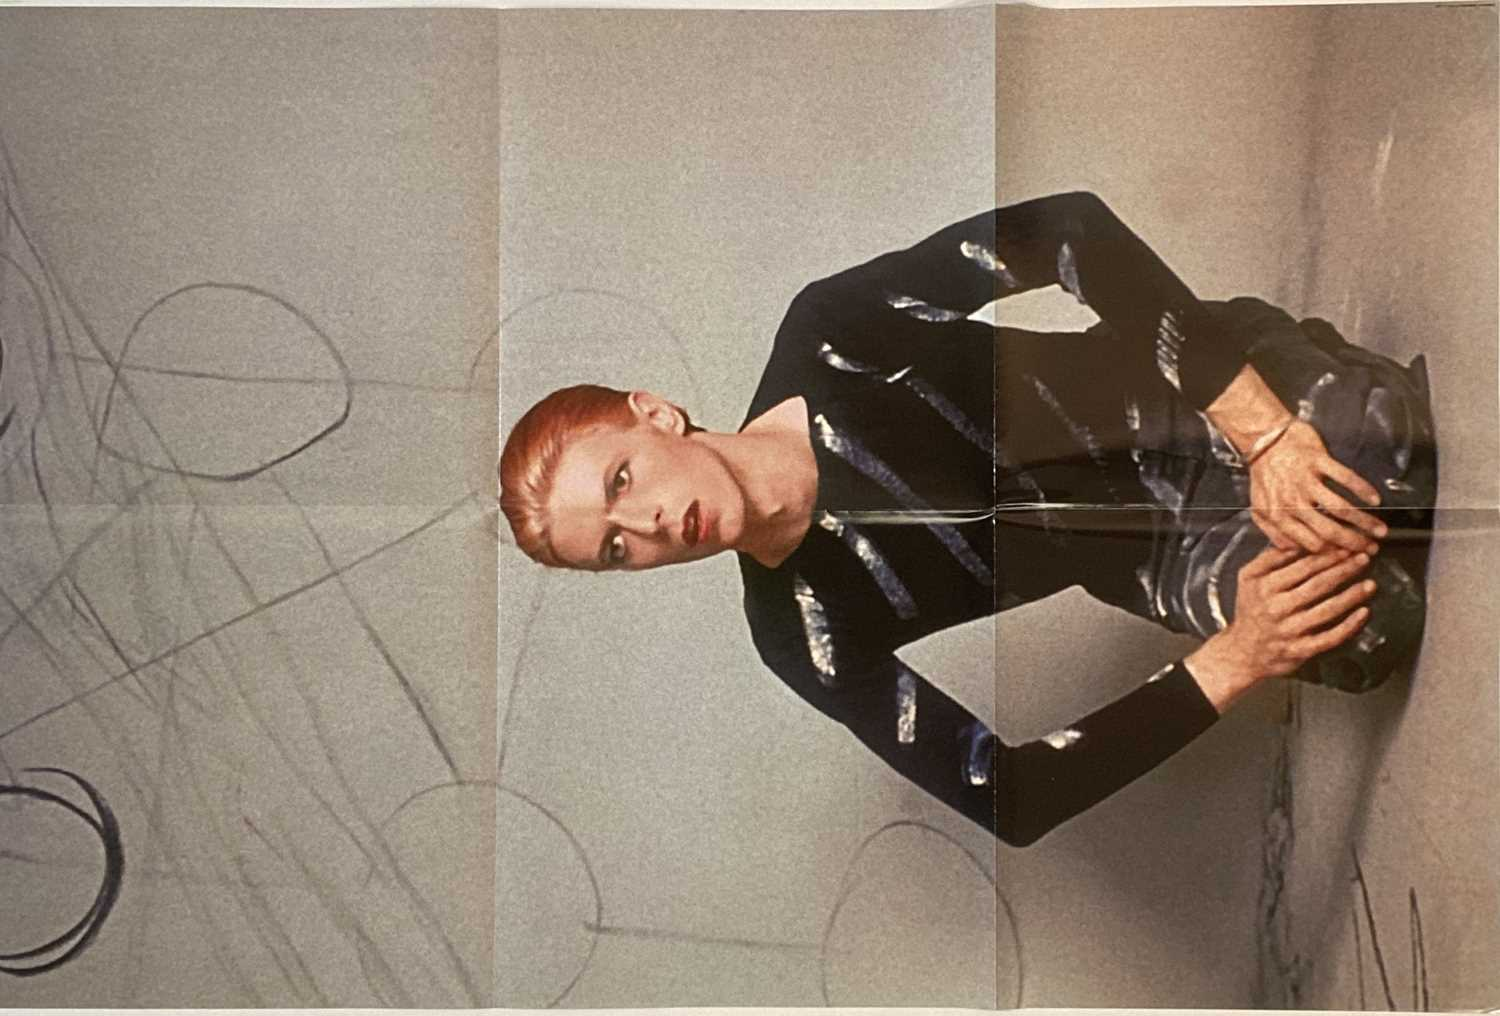 DAVID BOWIE - STATION TO STATION - DELUXE LP/ CD BOX-SET(BOWSTSD2010) - Image 5 of 5